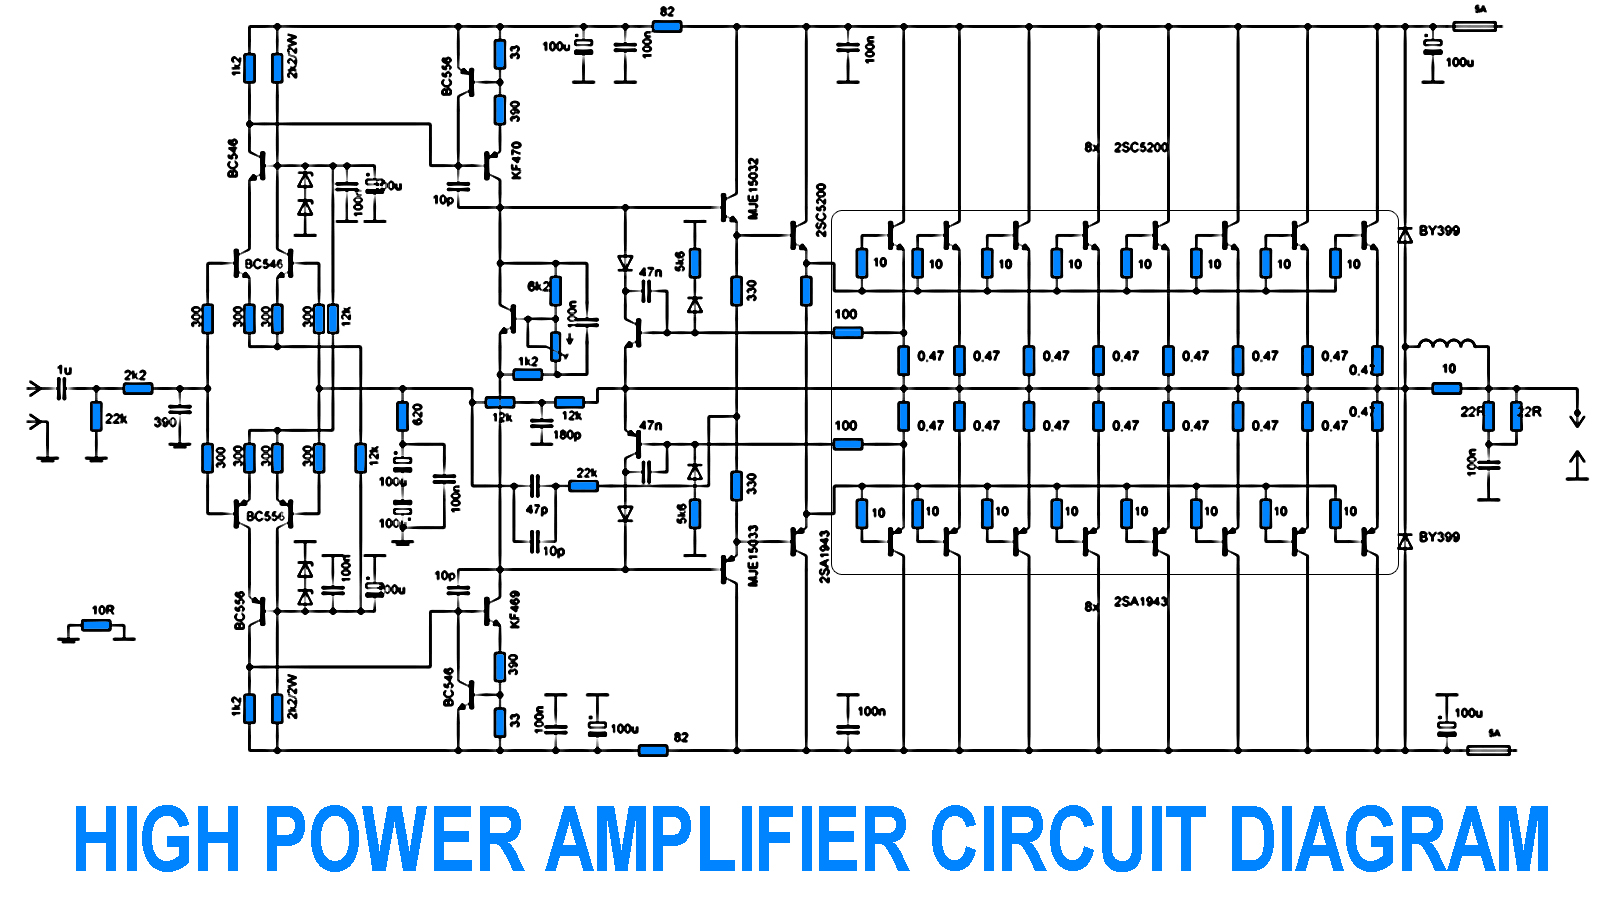 Im Yahica Pioneer Amplifier Schematic Diagram Zebronics Ups Circuit 700w Power With 2sc5200 2sa1943